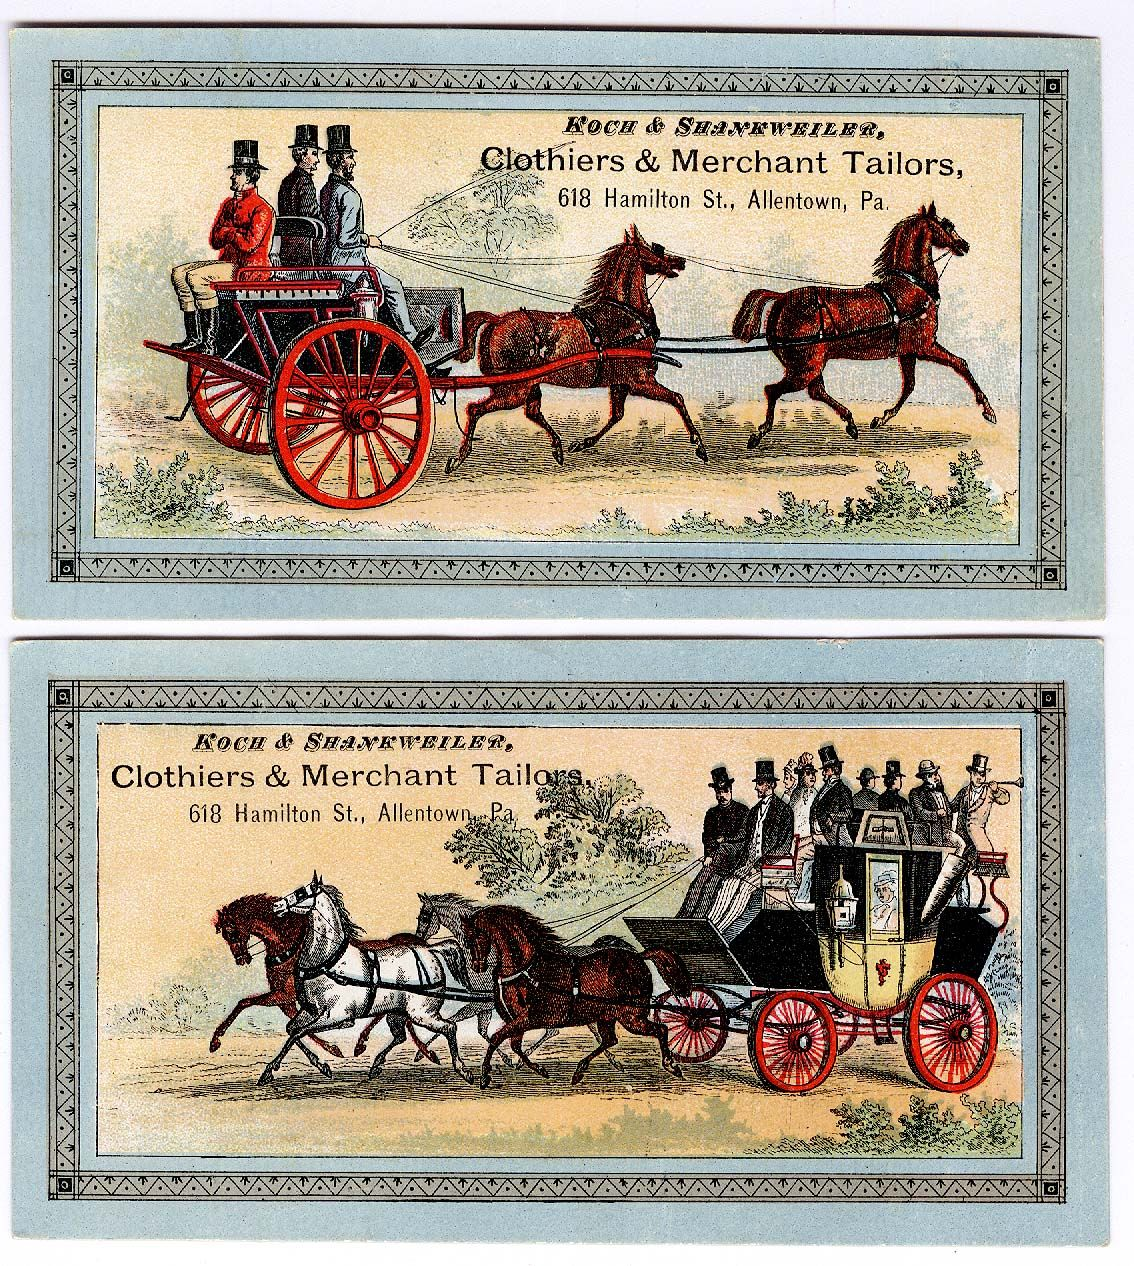 papers.quenalbertini: Antique carriage images | -Papers N°2 ...